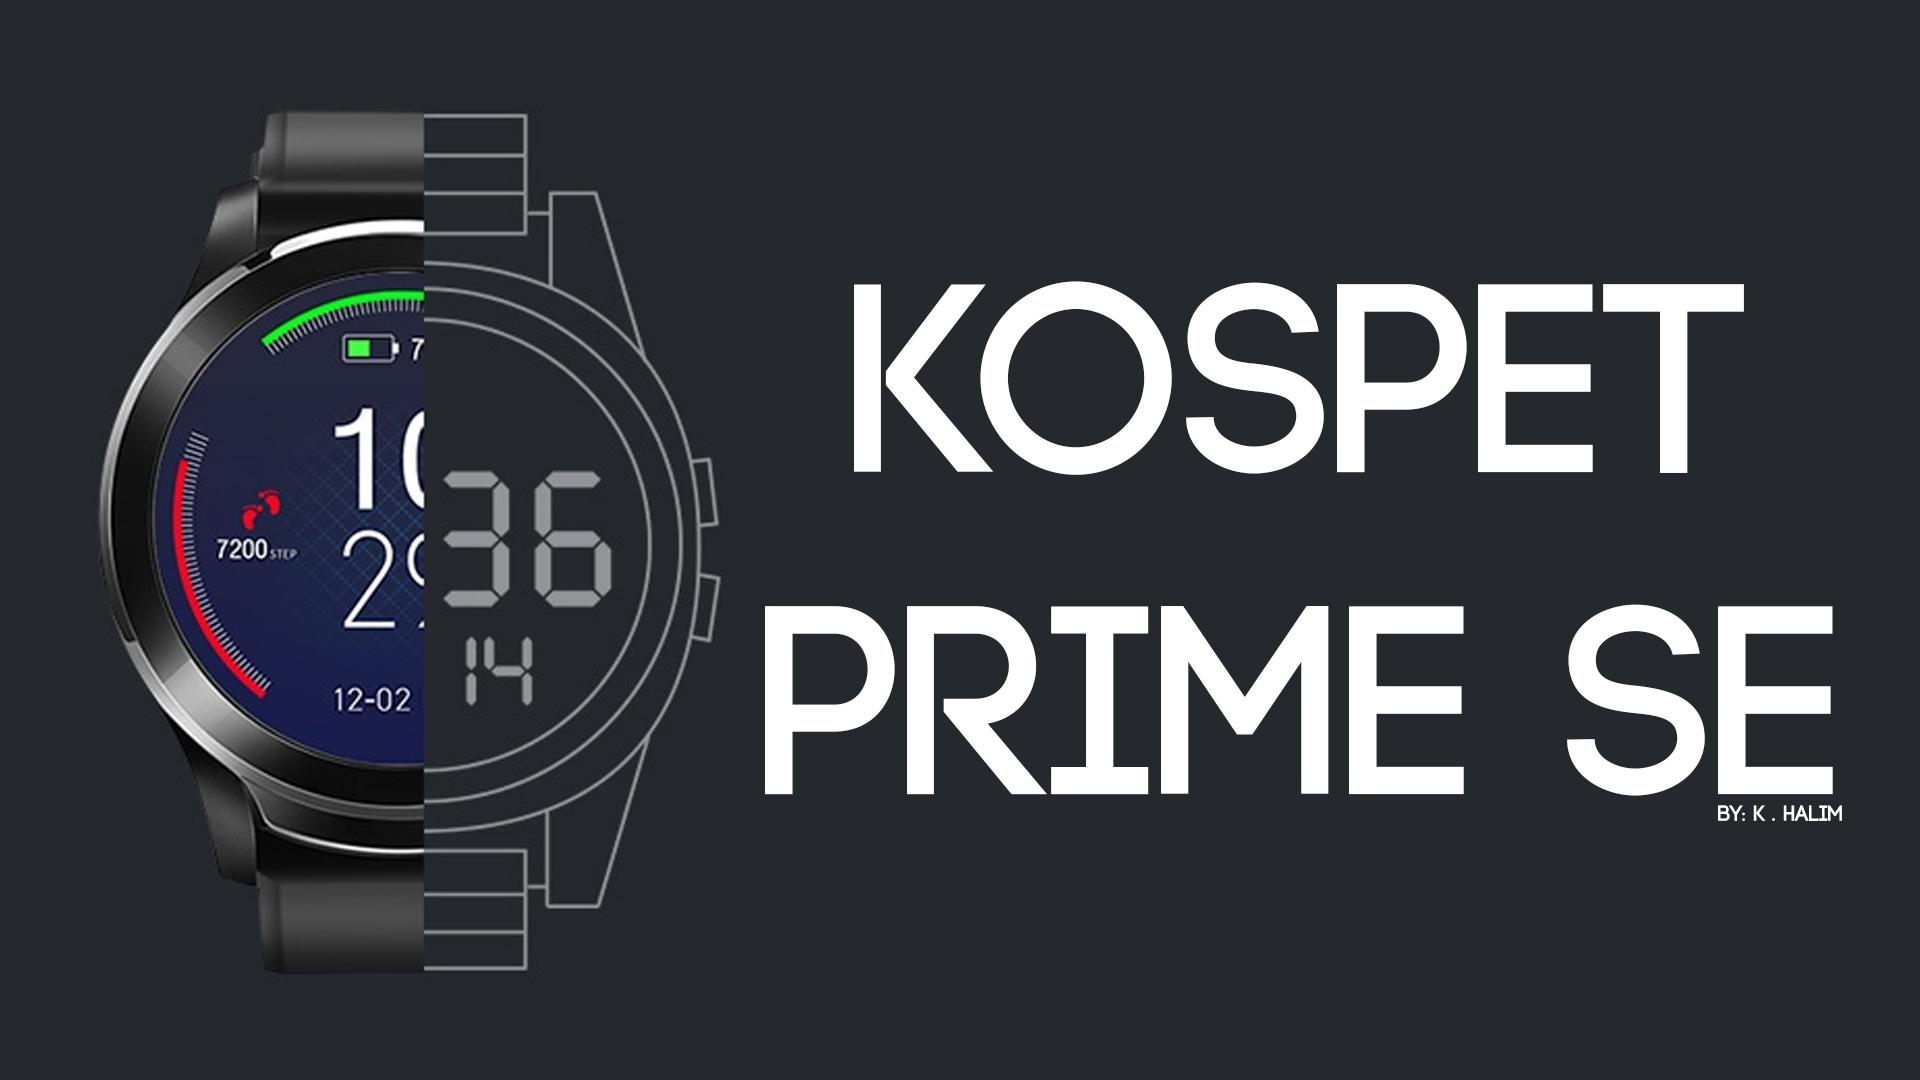 The New Generation of Watches KOSPET Prime SE